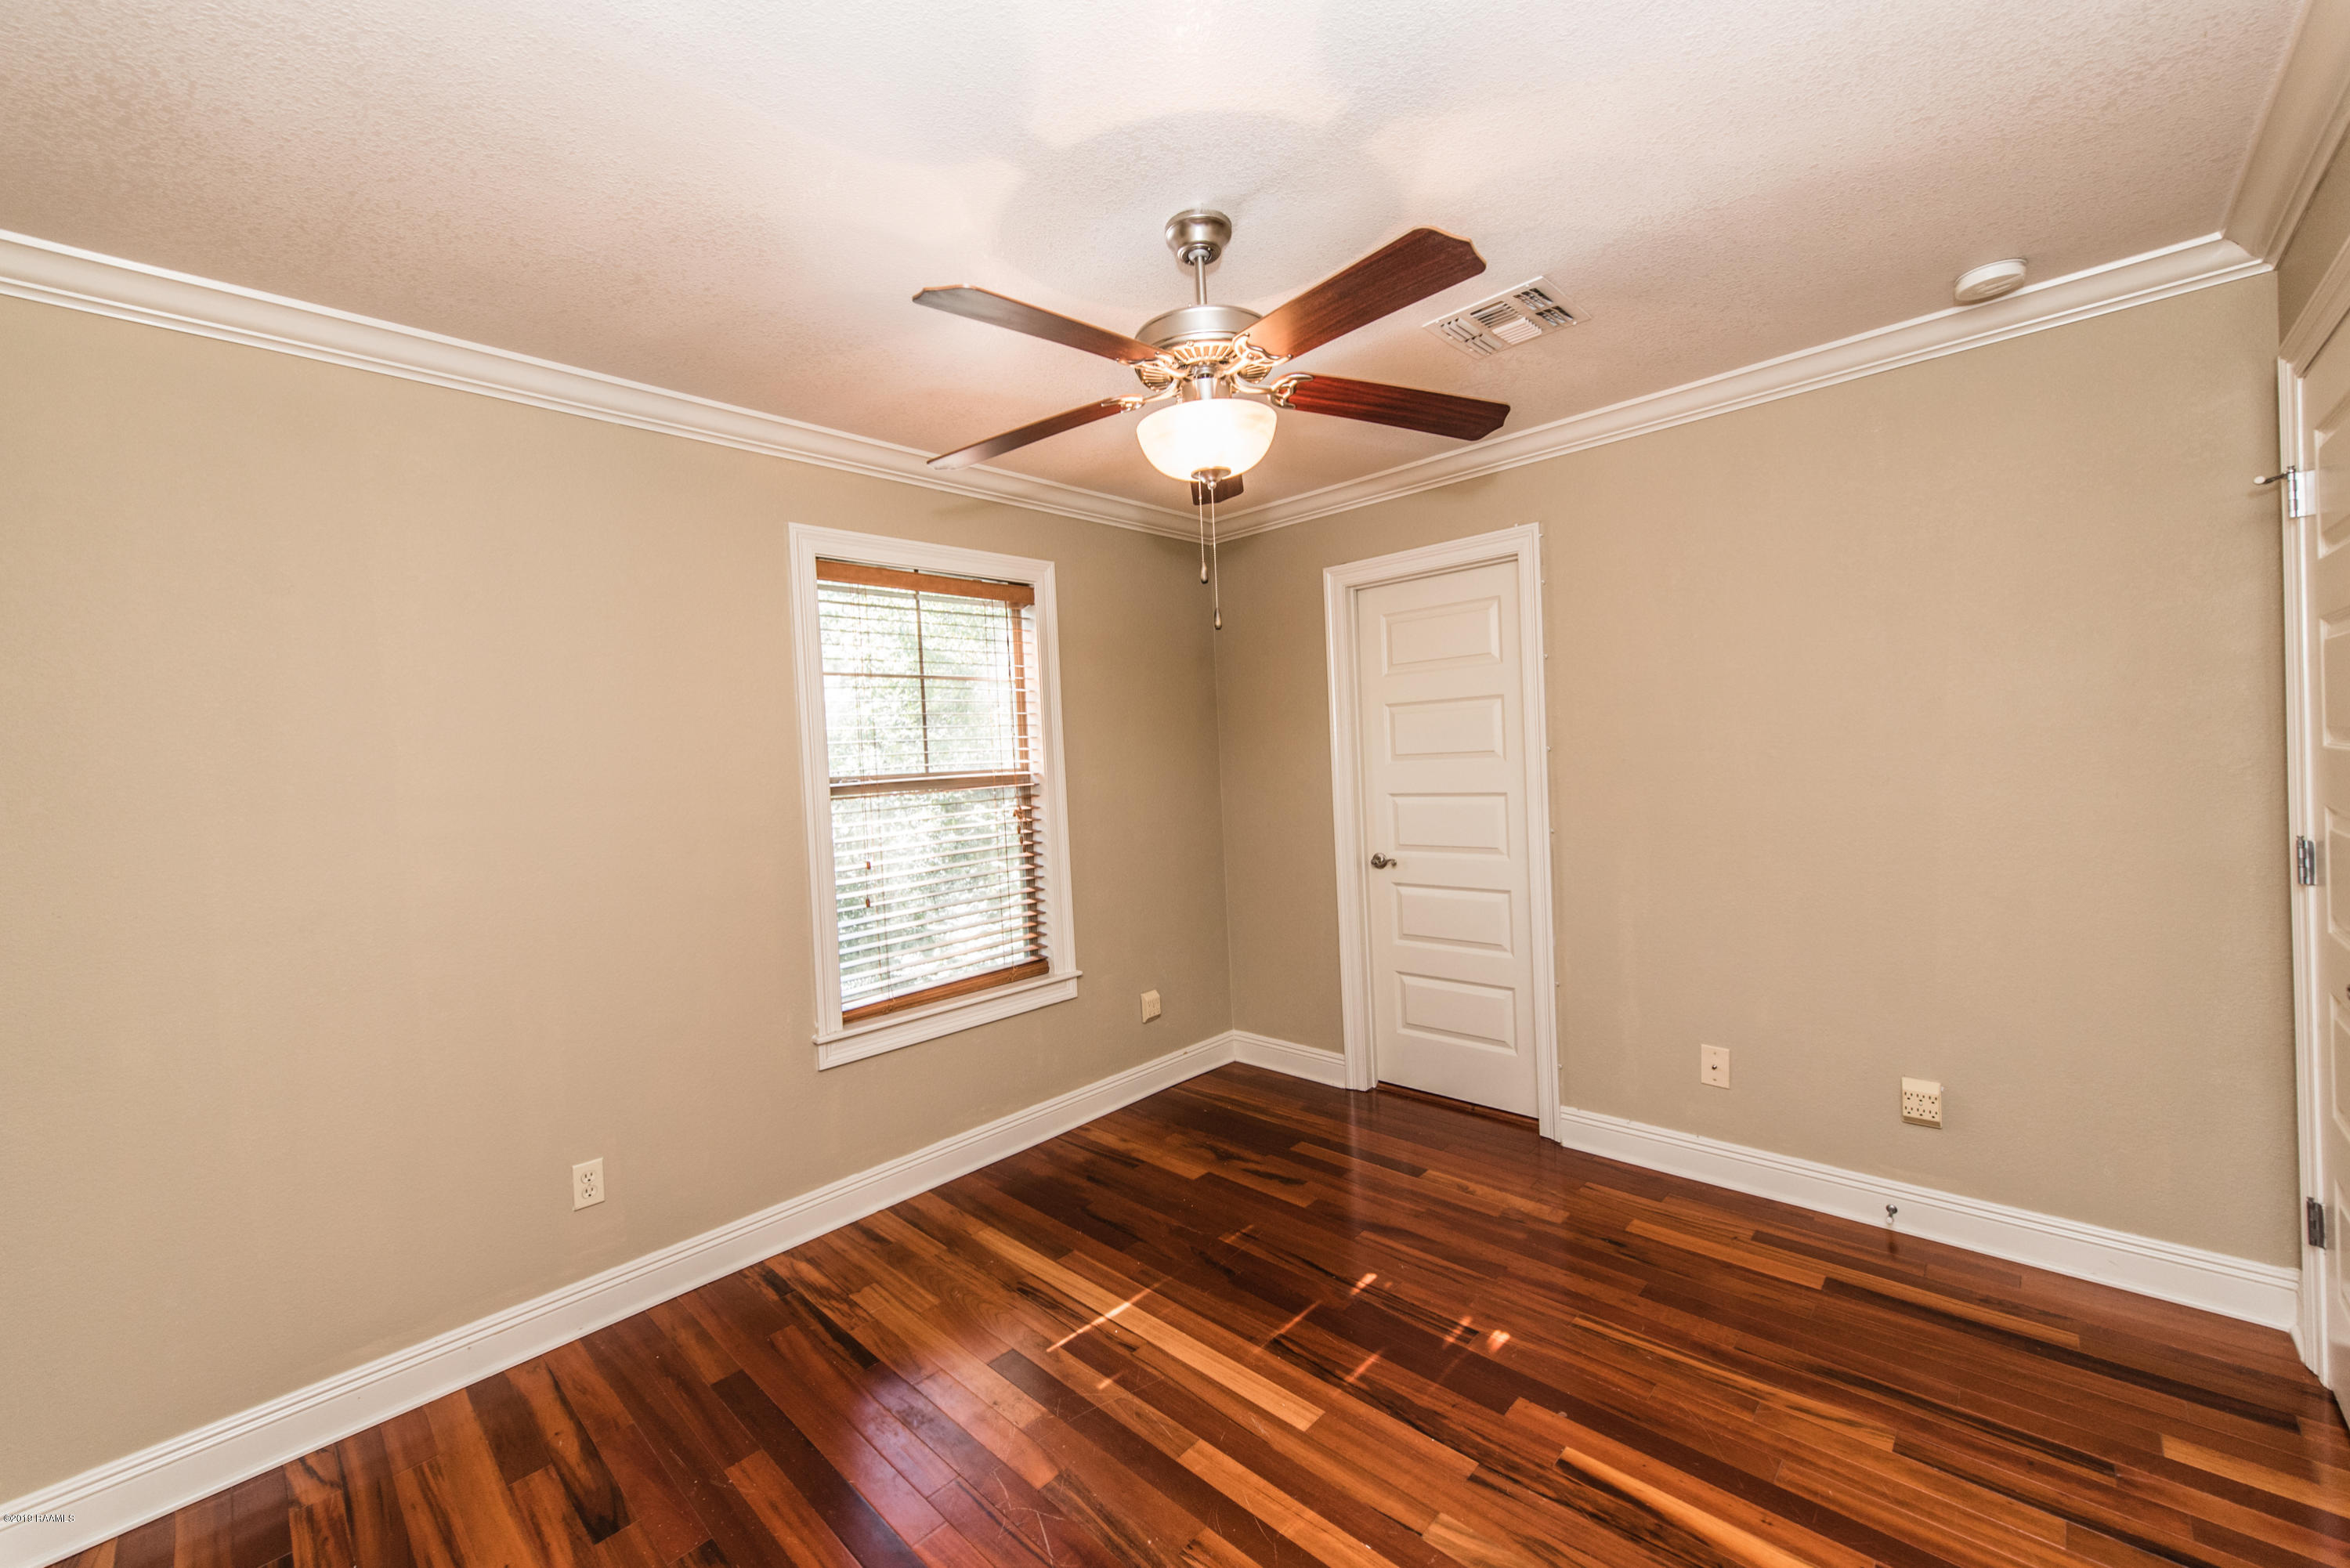 120 Ambiance Circle, Lafayette, LA 70508 Photo #20